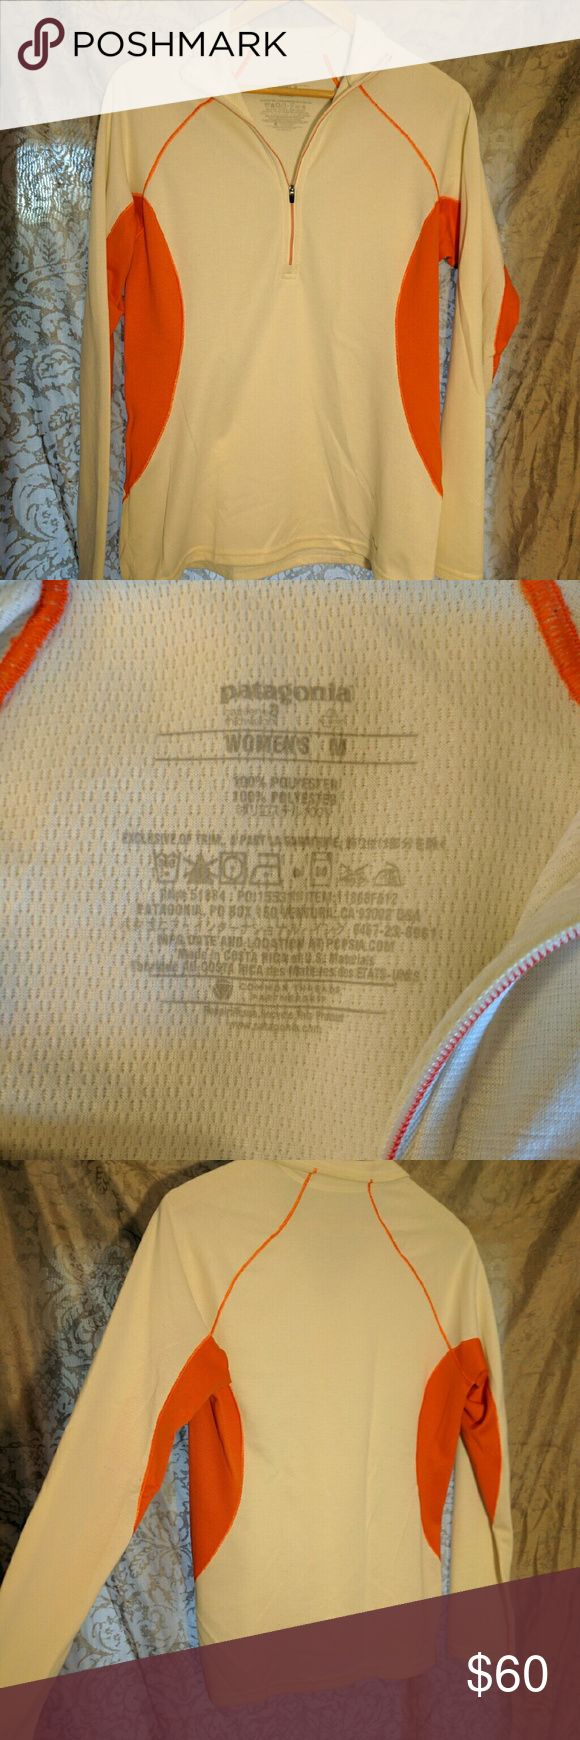 Patagonia under/mid layer pullover Orange and cream/white pullover. Worn once skiing with my ski coat over it. I bought two at the time and always preferred the other so this ones hardly been worn!! Durable quality garment from Patagonia (save $6 on v¡nted - find me with the same username) Patagonia Tops